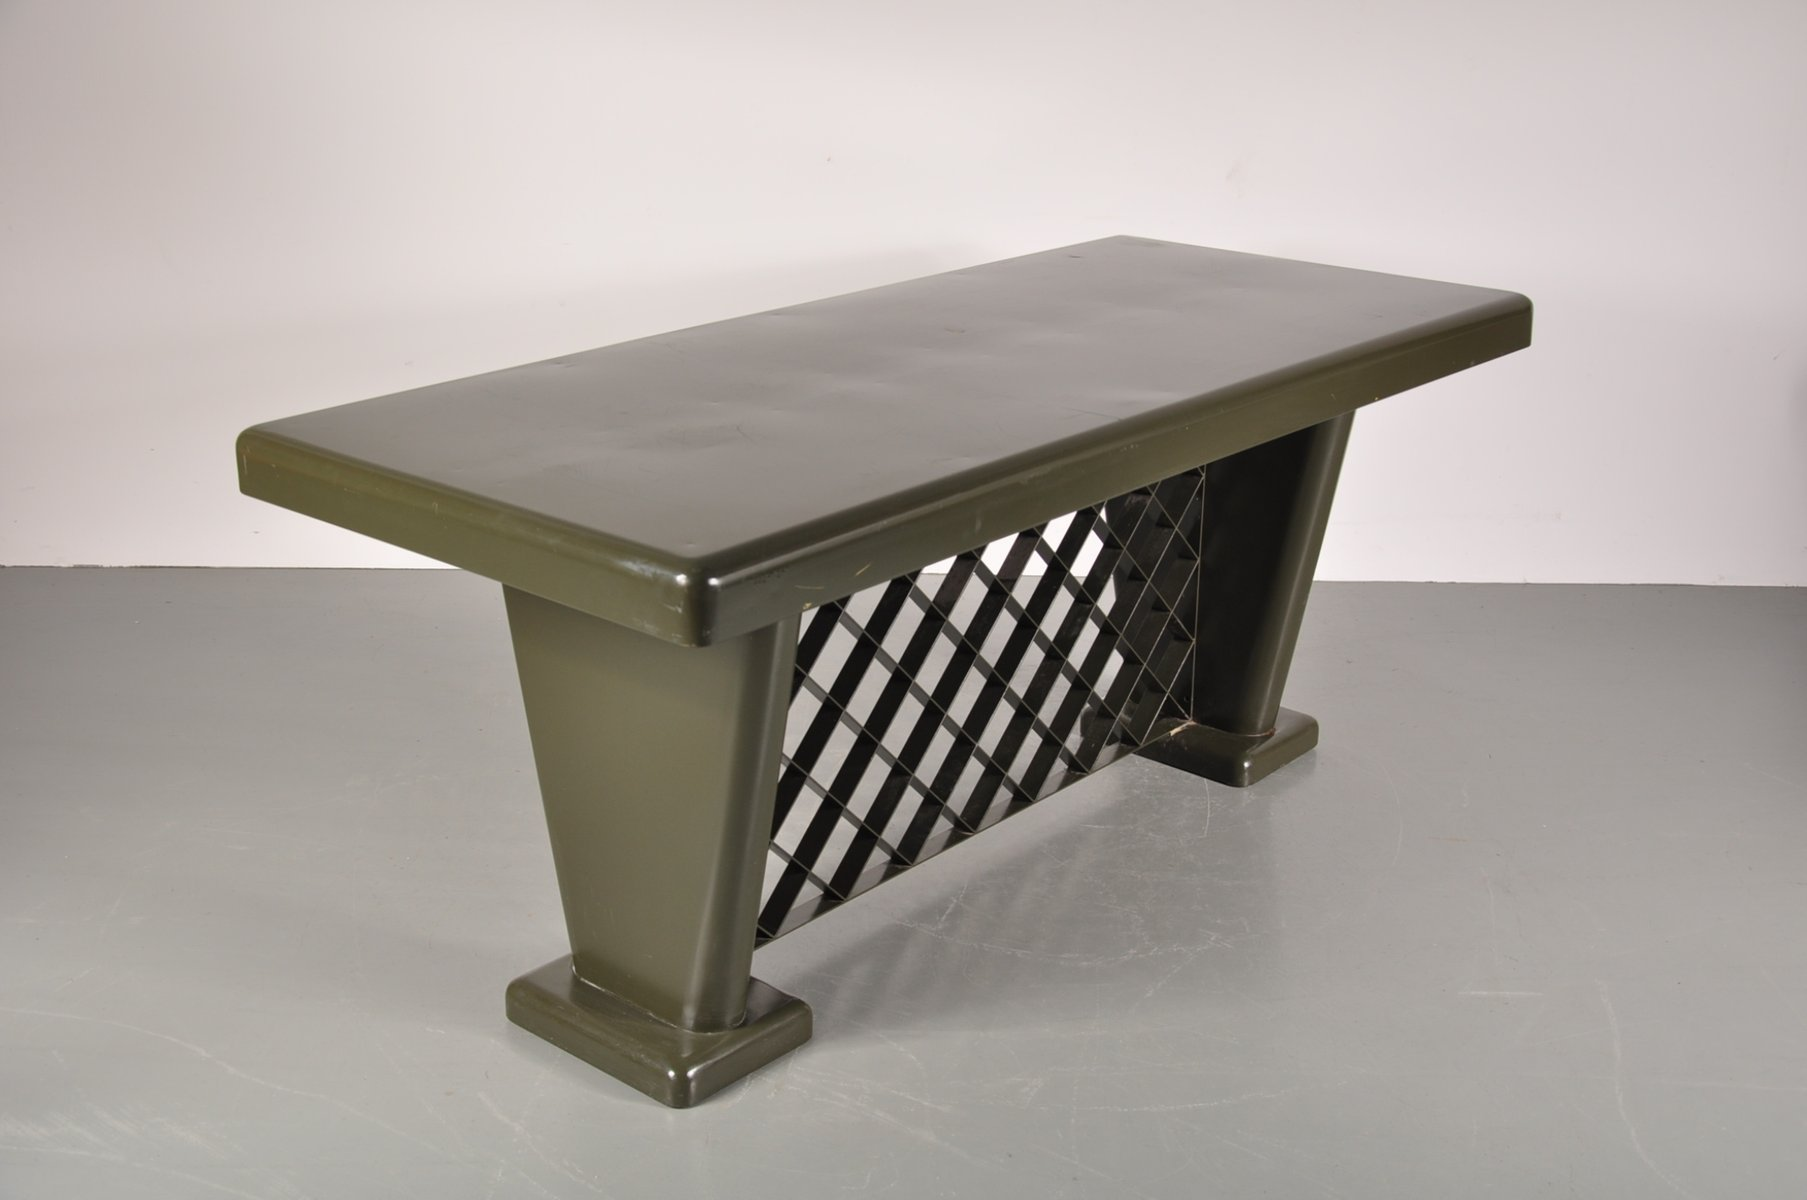 german art deco metal table 1930s for sale at pamono. Black Bedroom Furniture Sets. Home Design Ideas